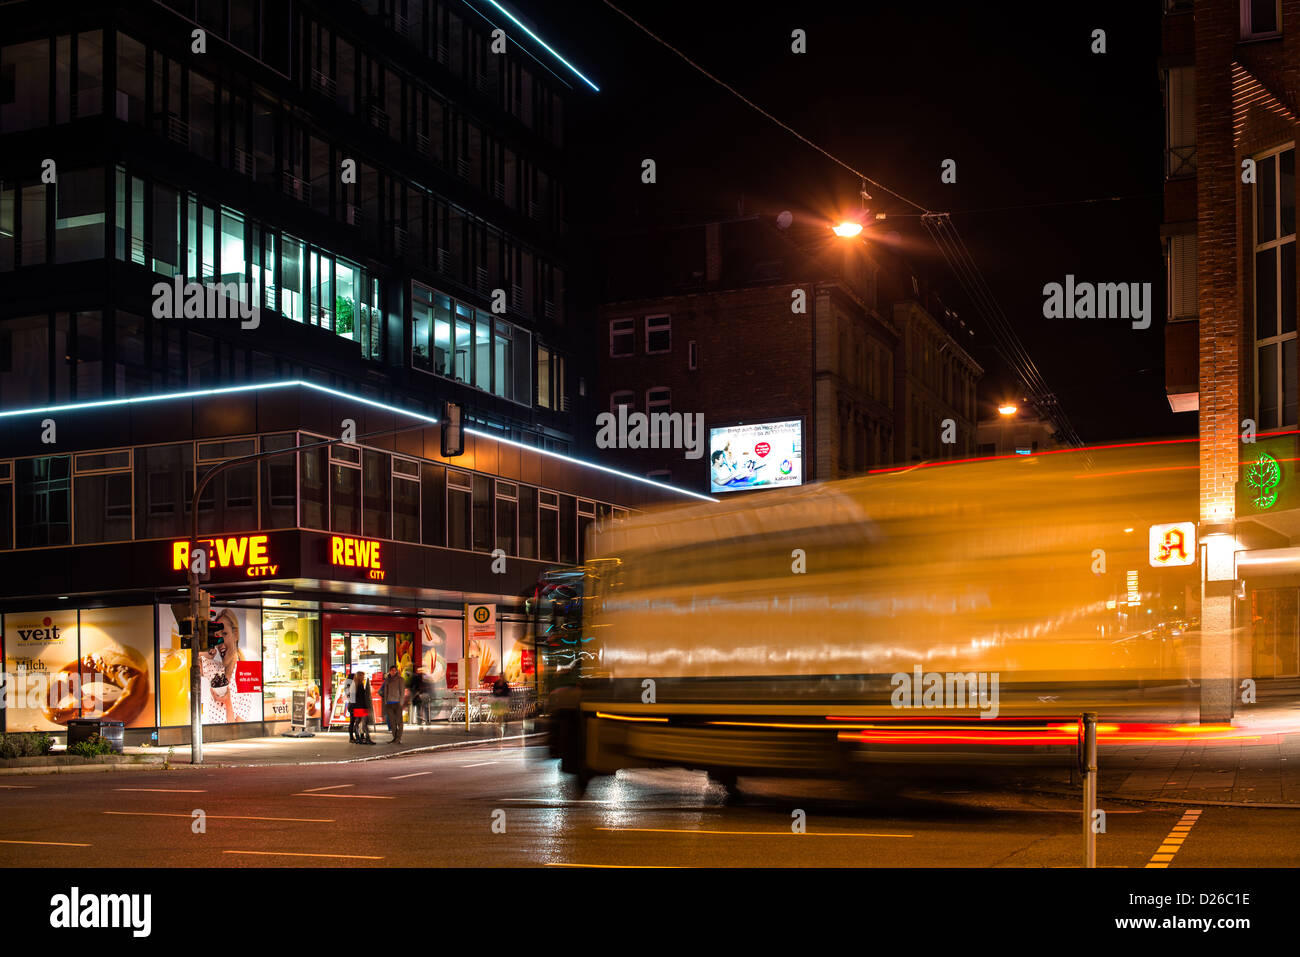 Vivid night scenery showing light traces of a truck turning off in long exposure at an intersection on Nov. 8, 2012 Stock Photo